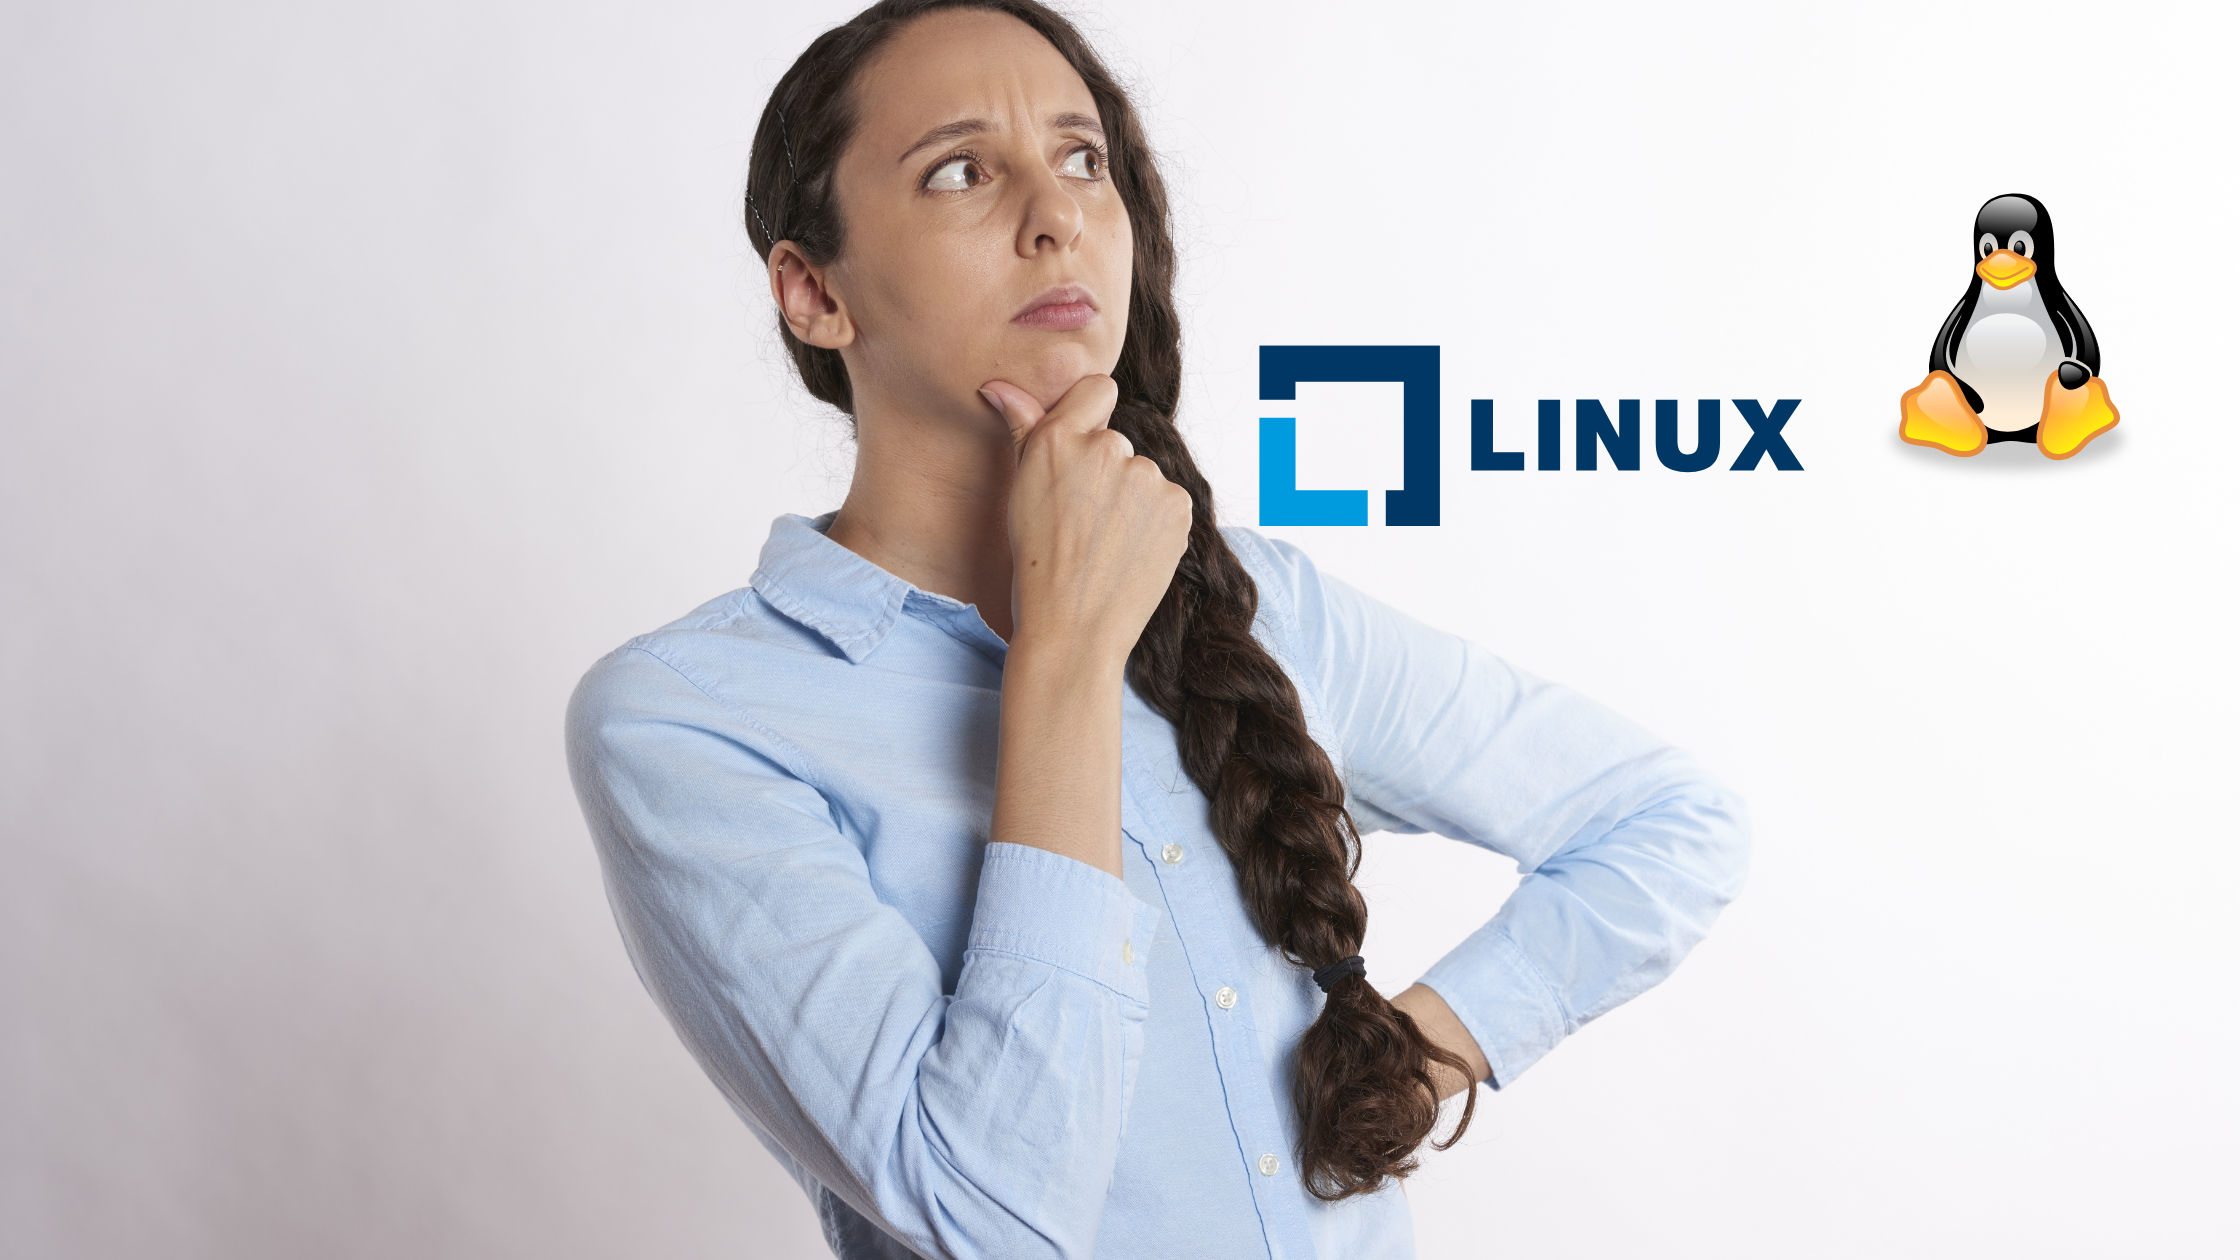 is linux easy